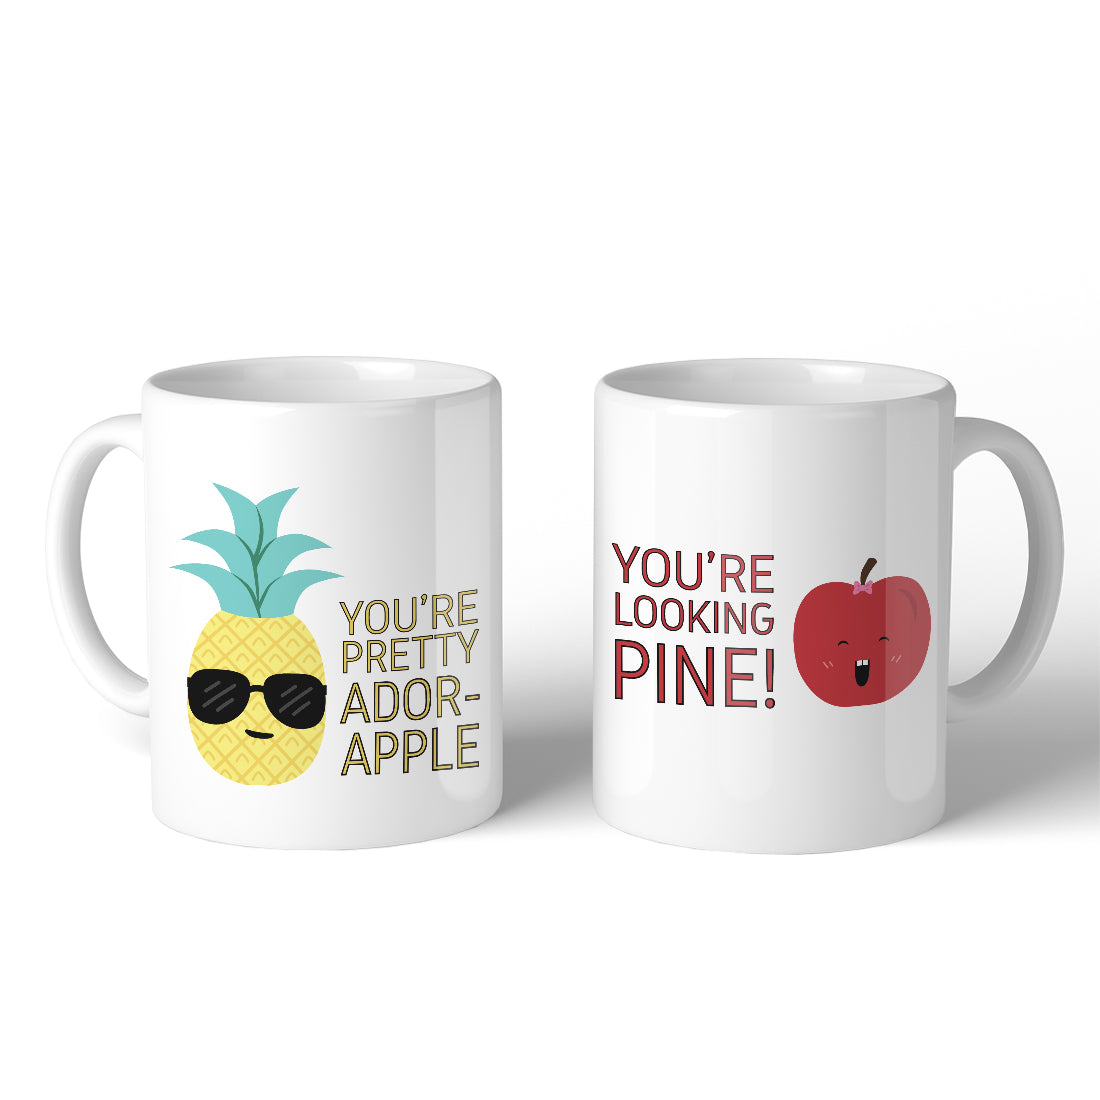 Pineapple Apple 11oz Cute Matching Couple Gift Mugs For Anniversary 365 In Love Matching Gifts Ideas